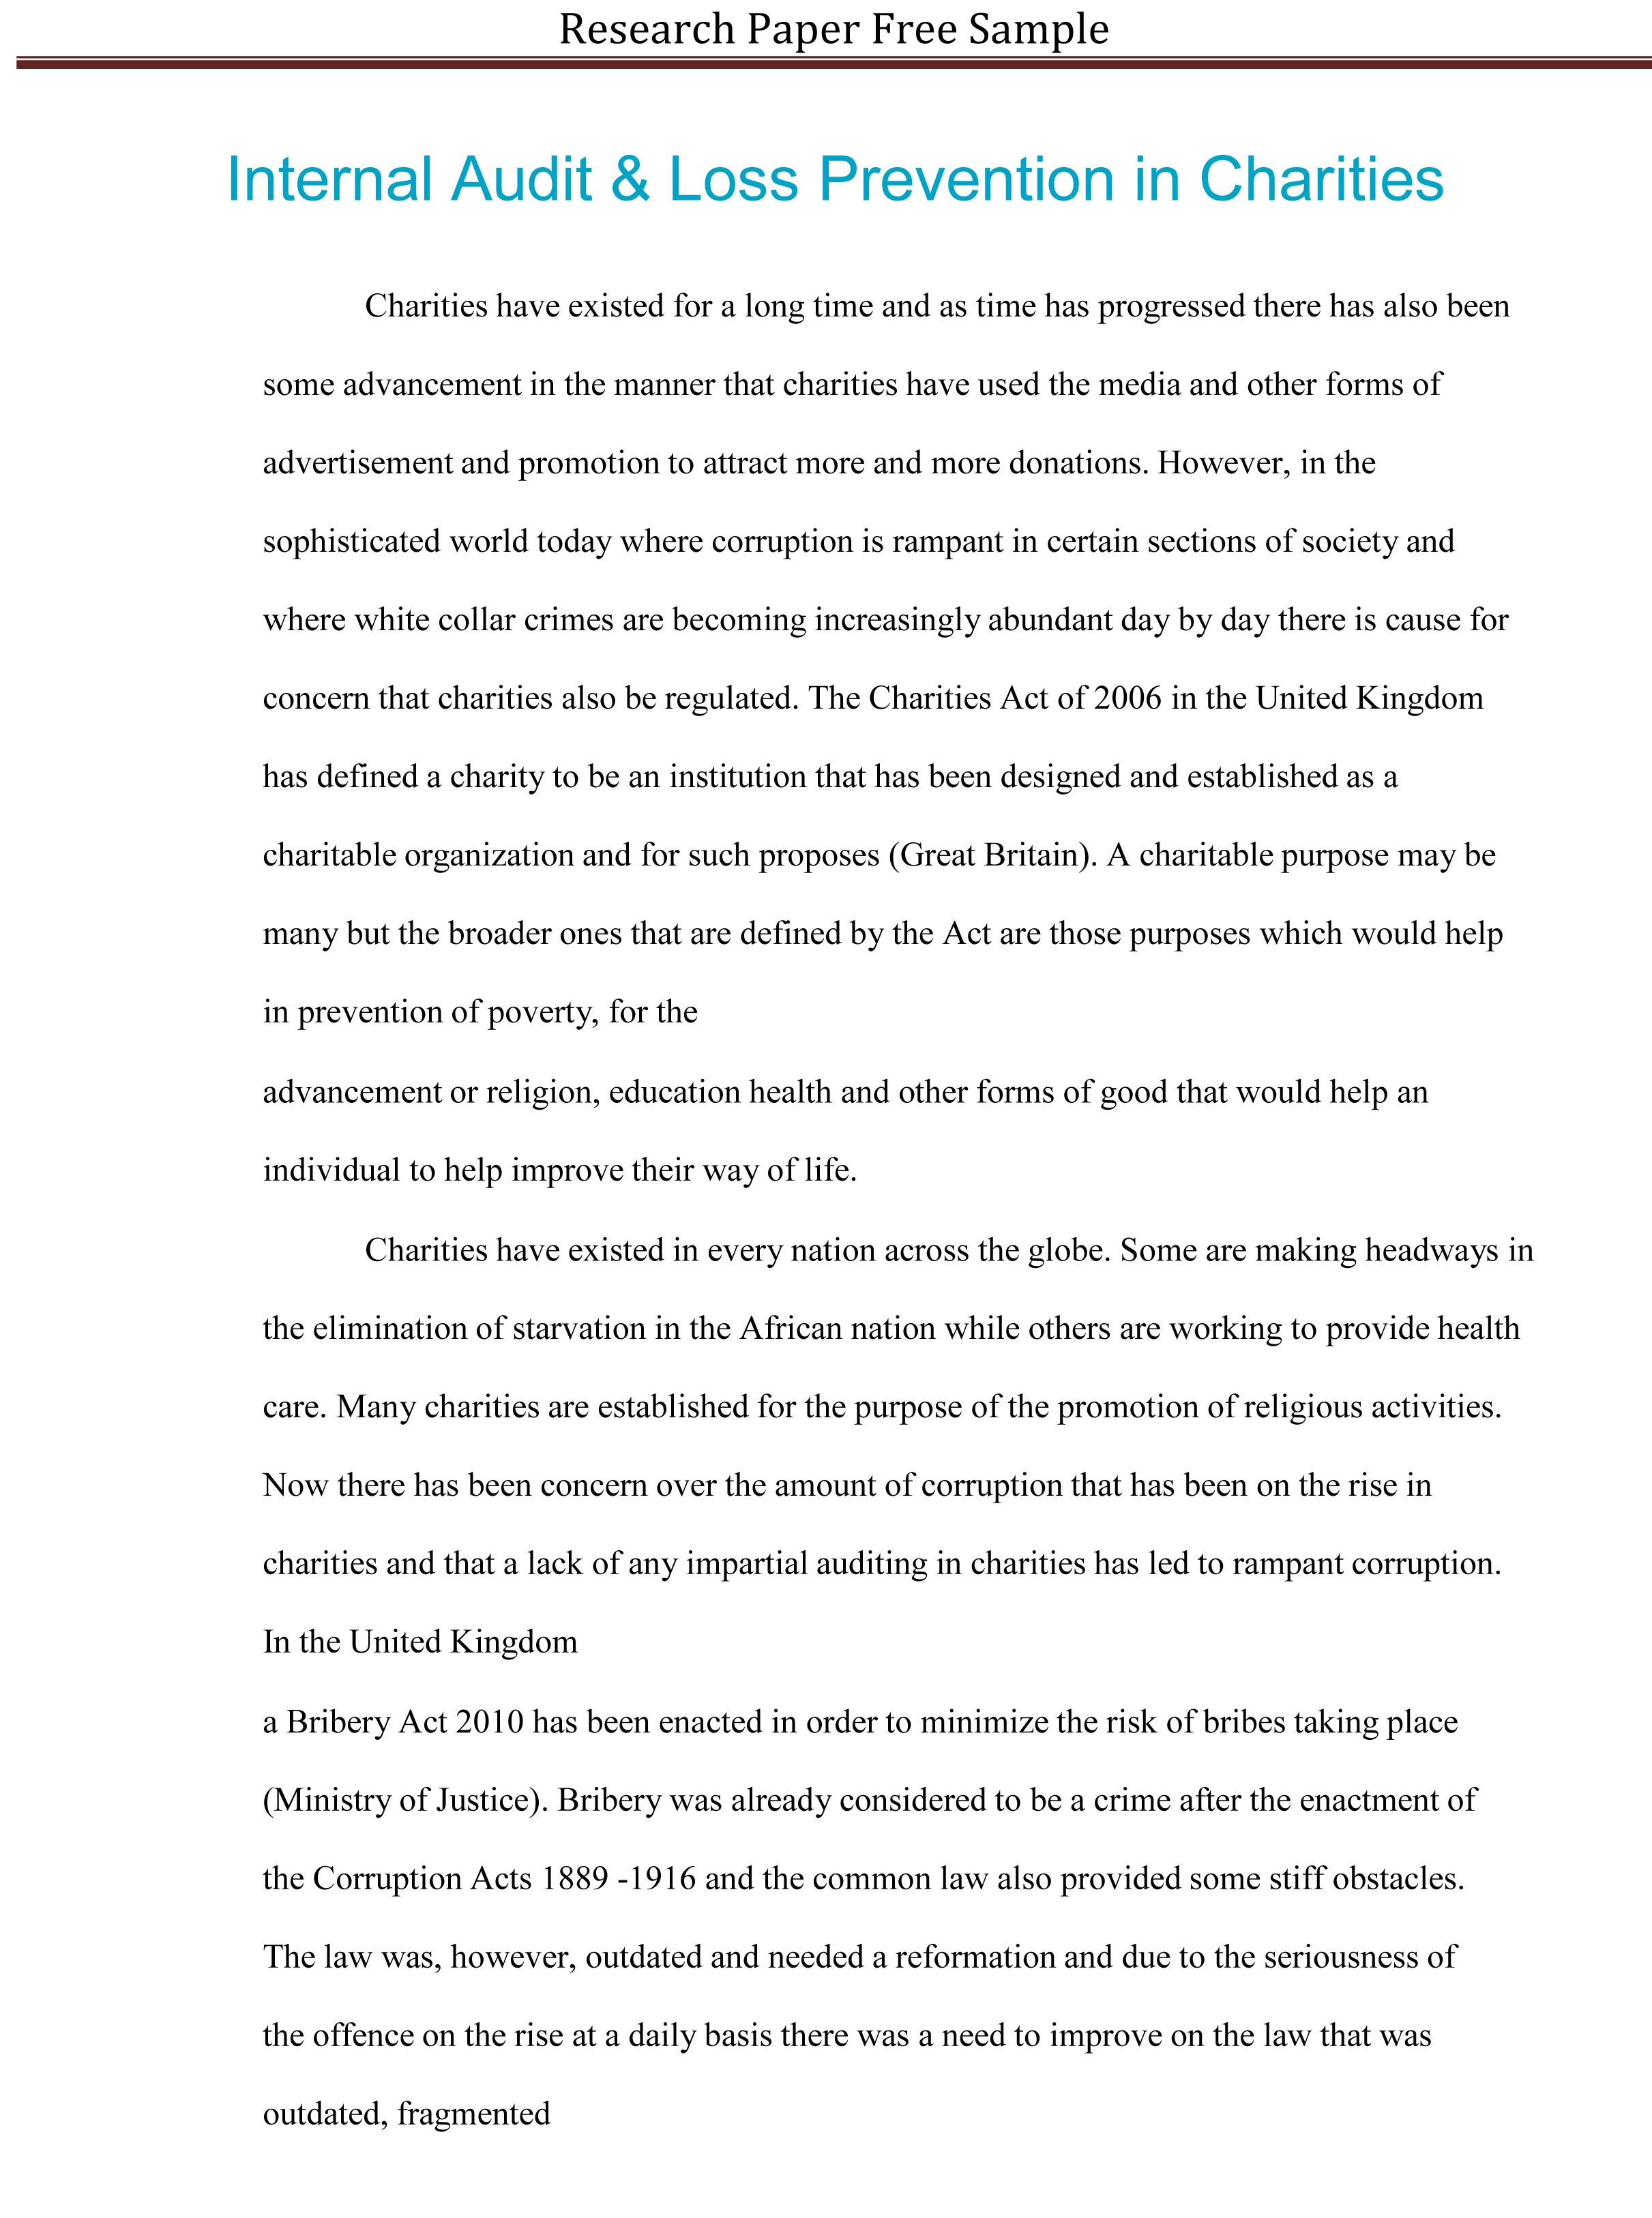 019 Research Paper Education Topic Wondrous Suggestions Ideas Full